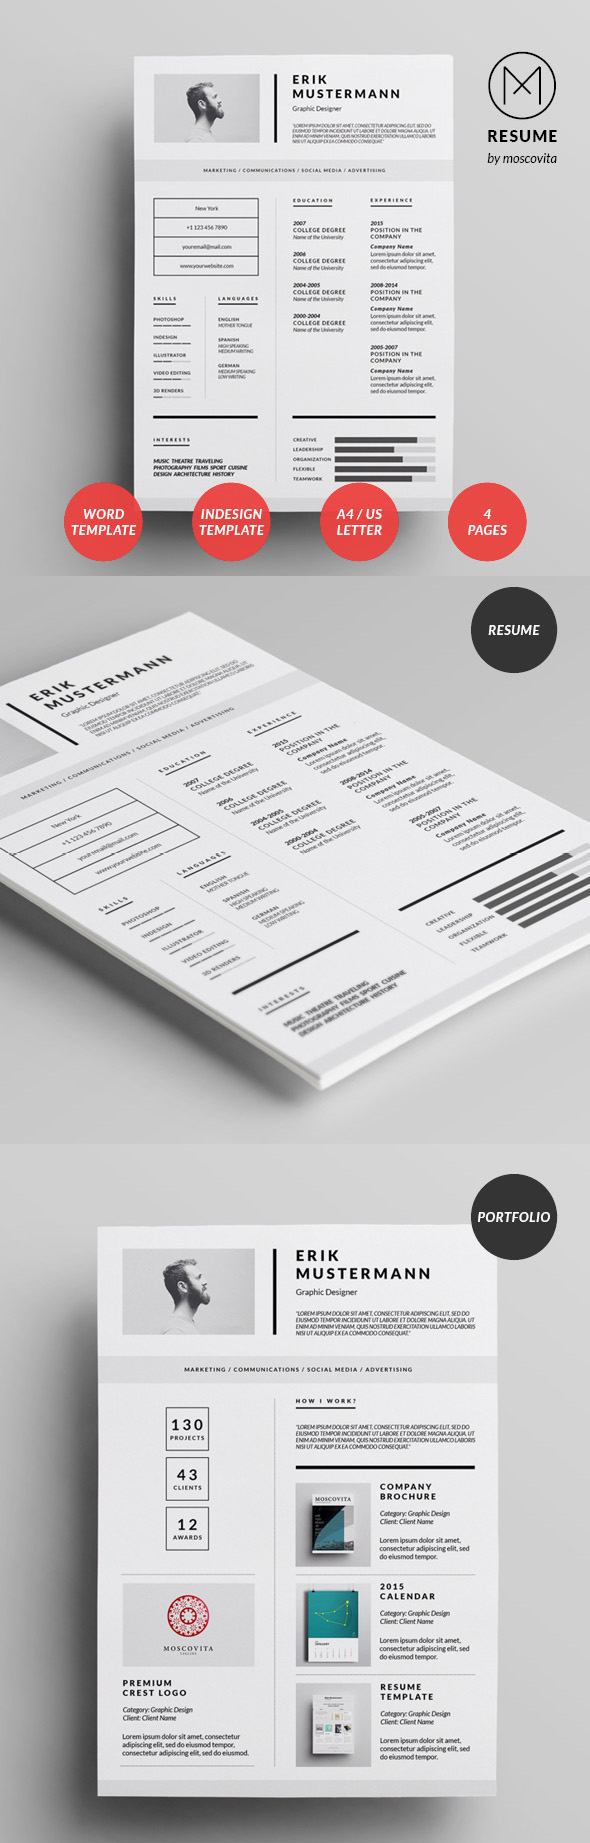 best resume templates for design graphic junction medical examples modern template Resume Medical Resume Examples 2018